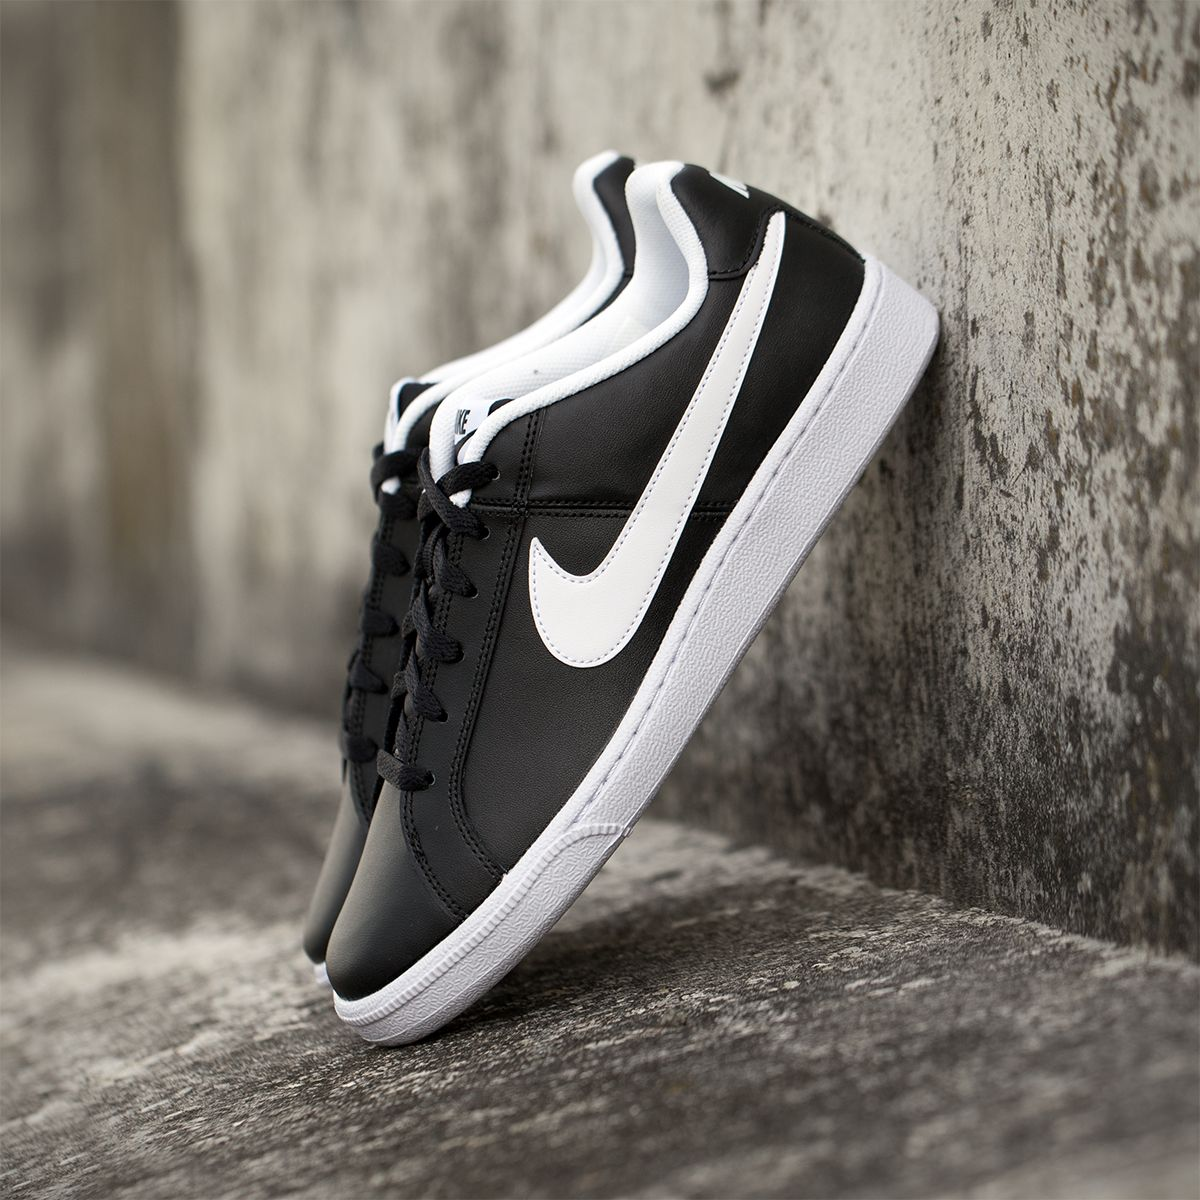 Keep your sneaker game strong with the latest Nike Court Royale sneakers in  Black/White